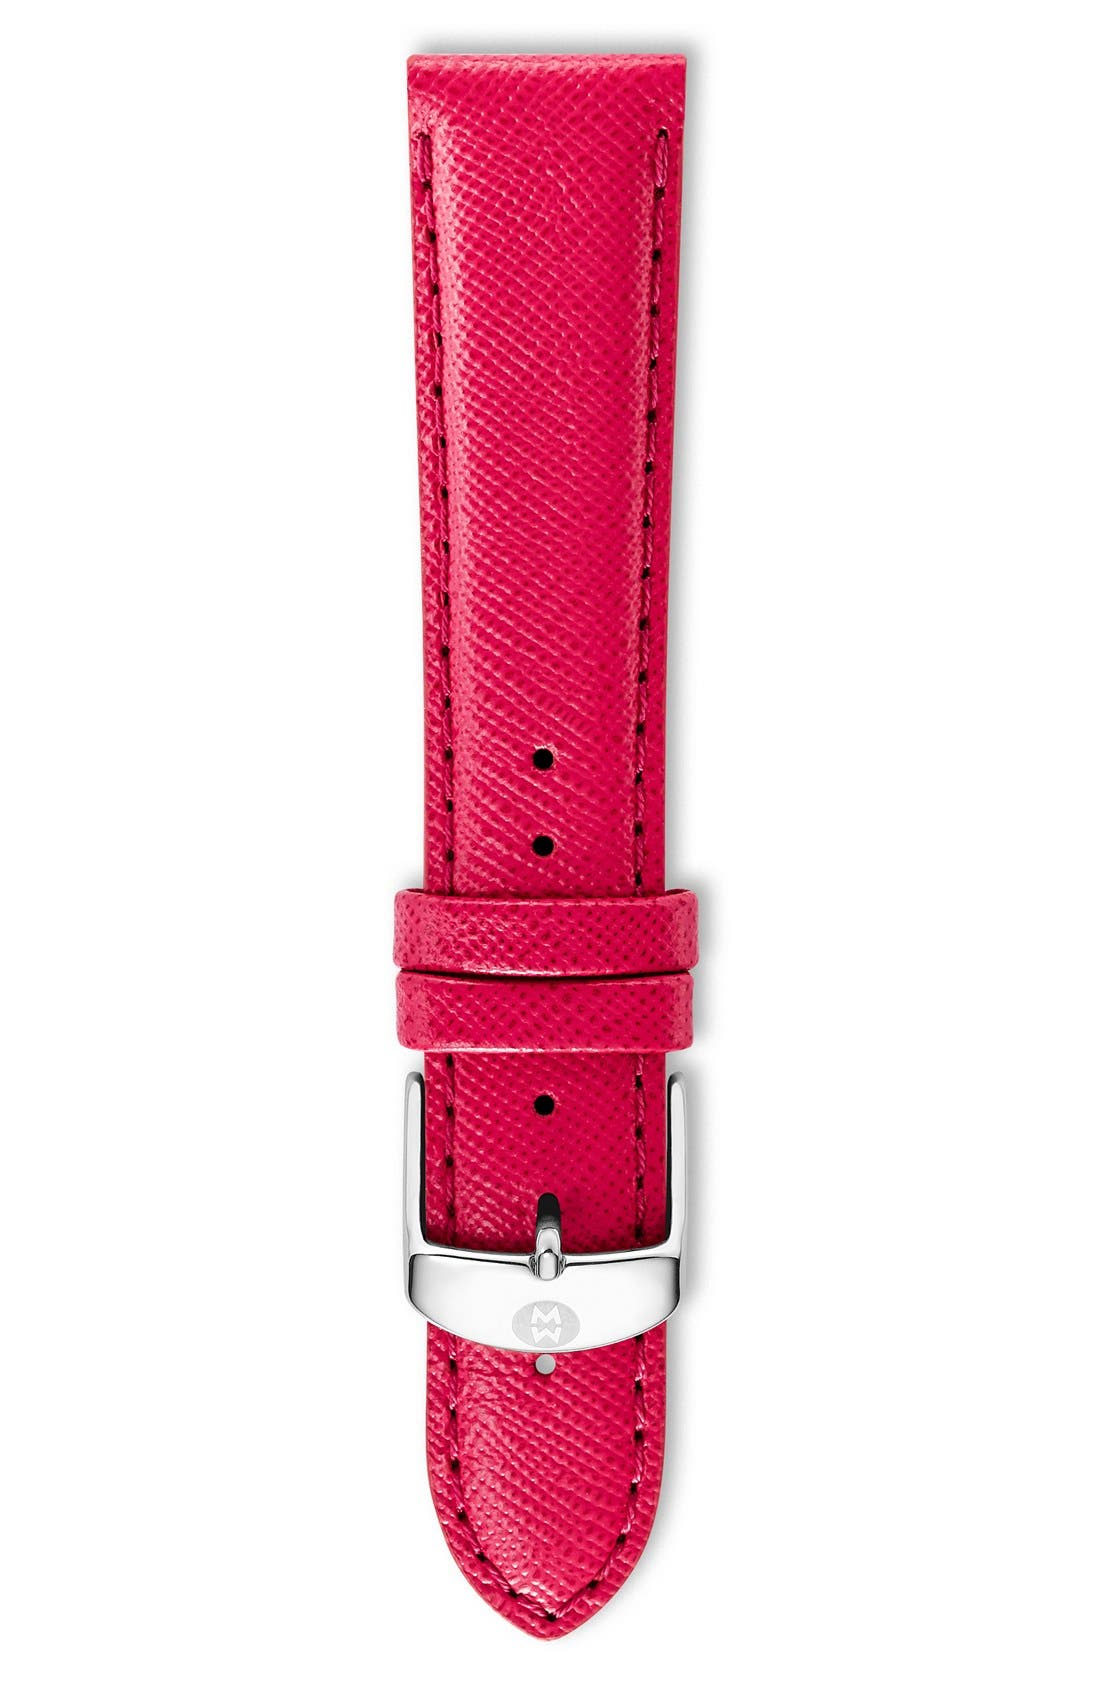 16mm Saffiano Leather Watch Strap,                             Main thumbnail 6, color,